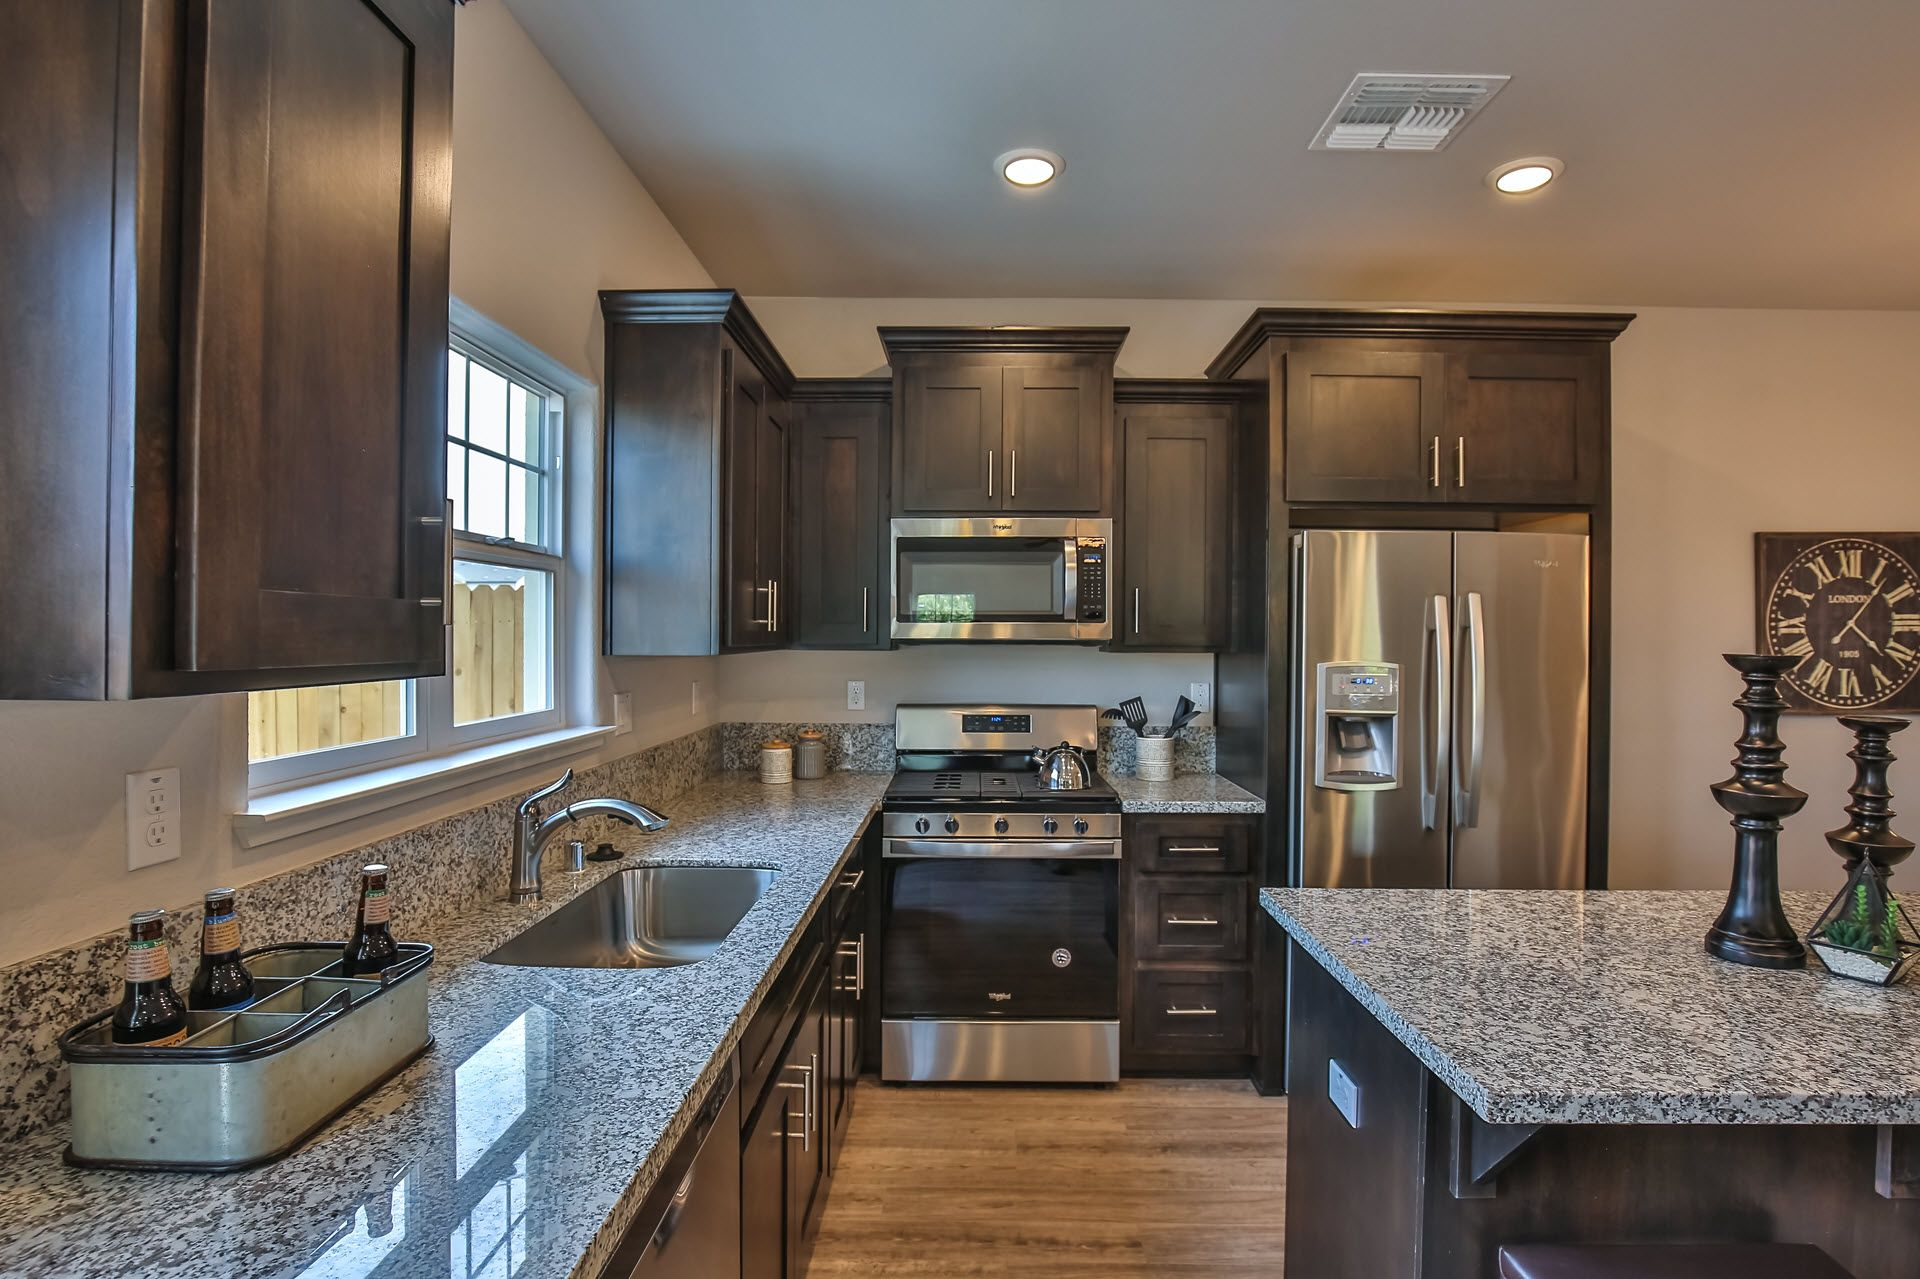 Kitchen featured in the Residence 1669 By Village by the Ponds  in Sacramento, CA